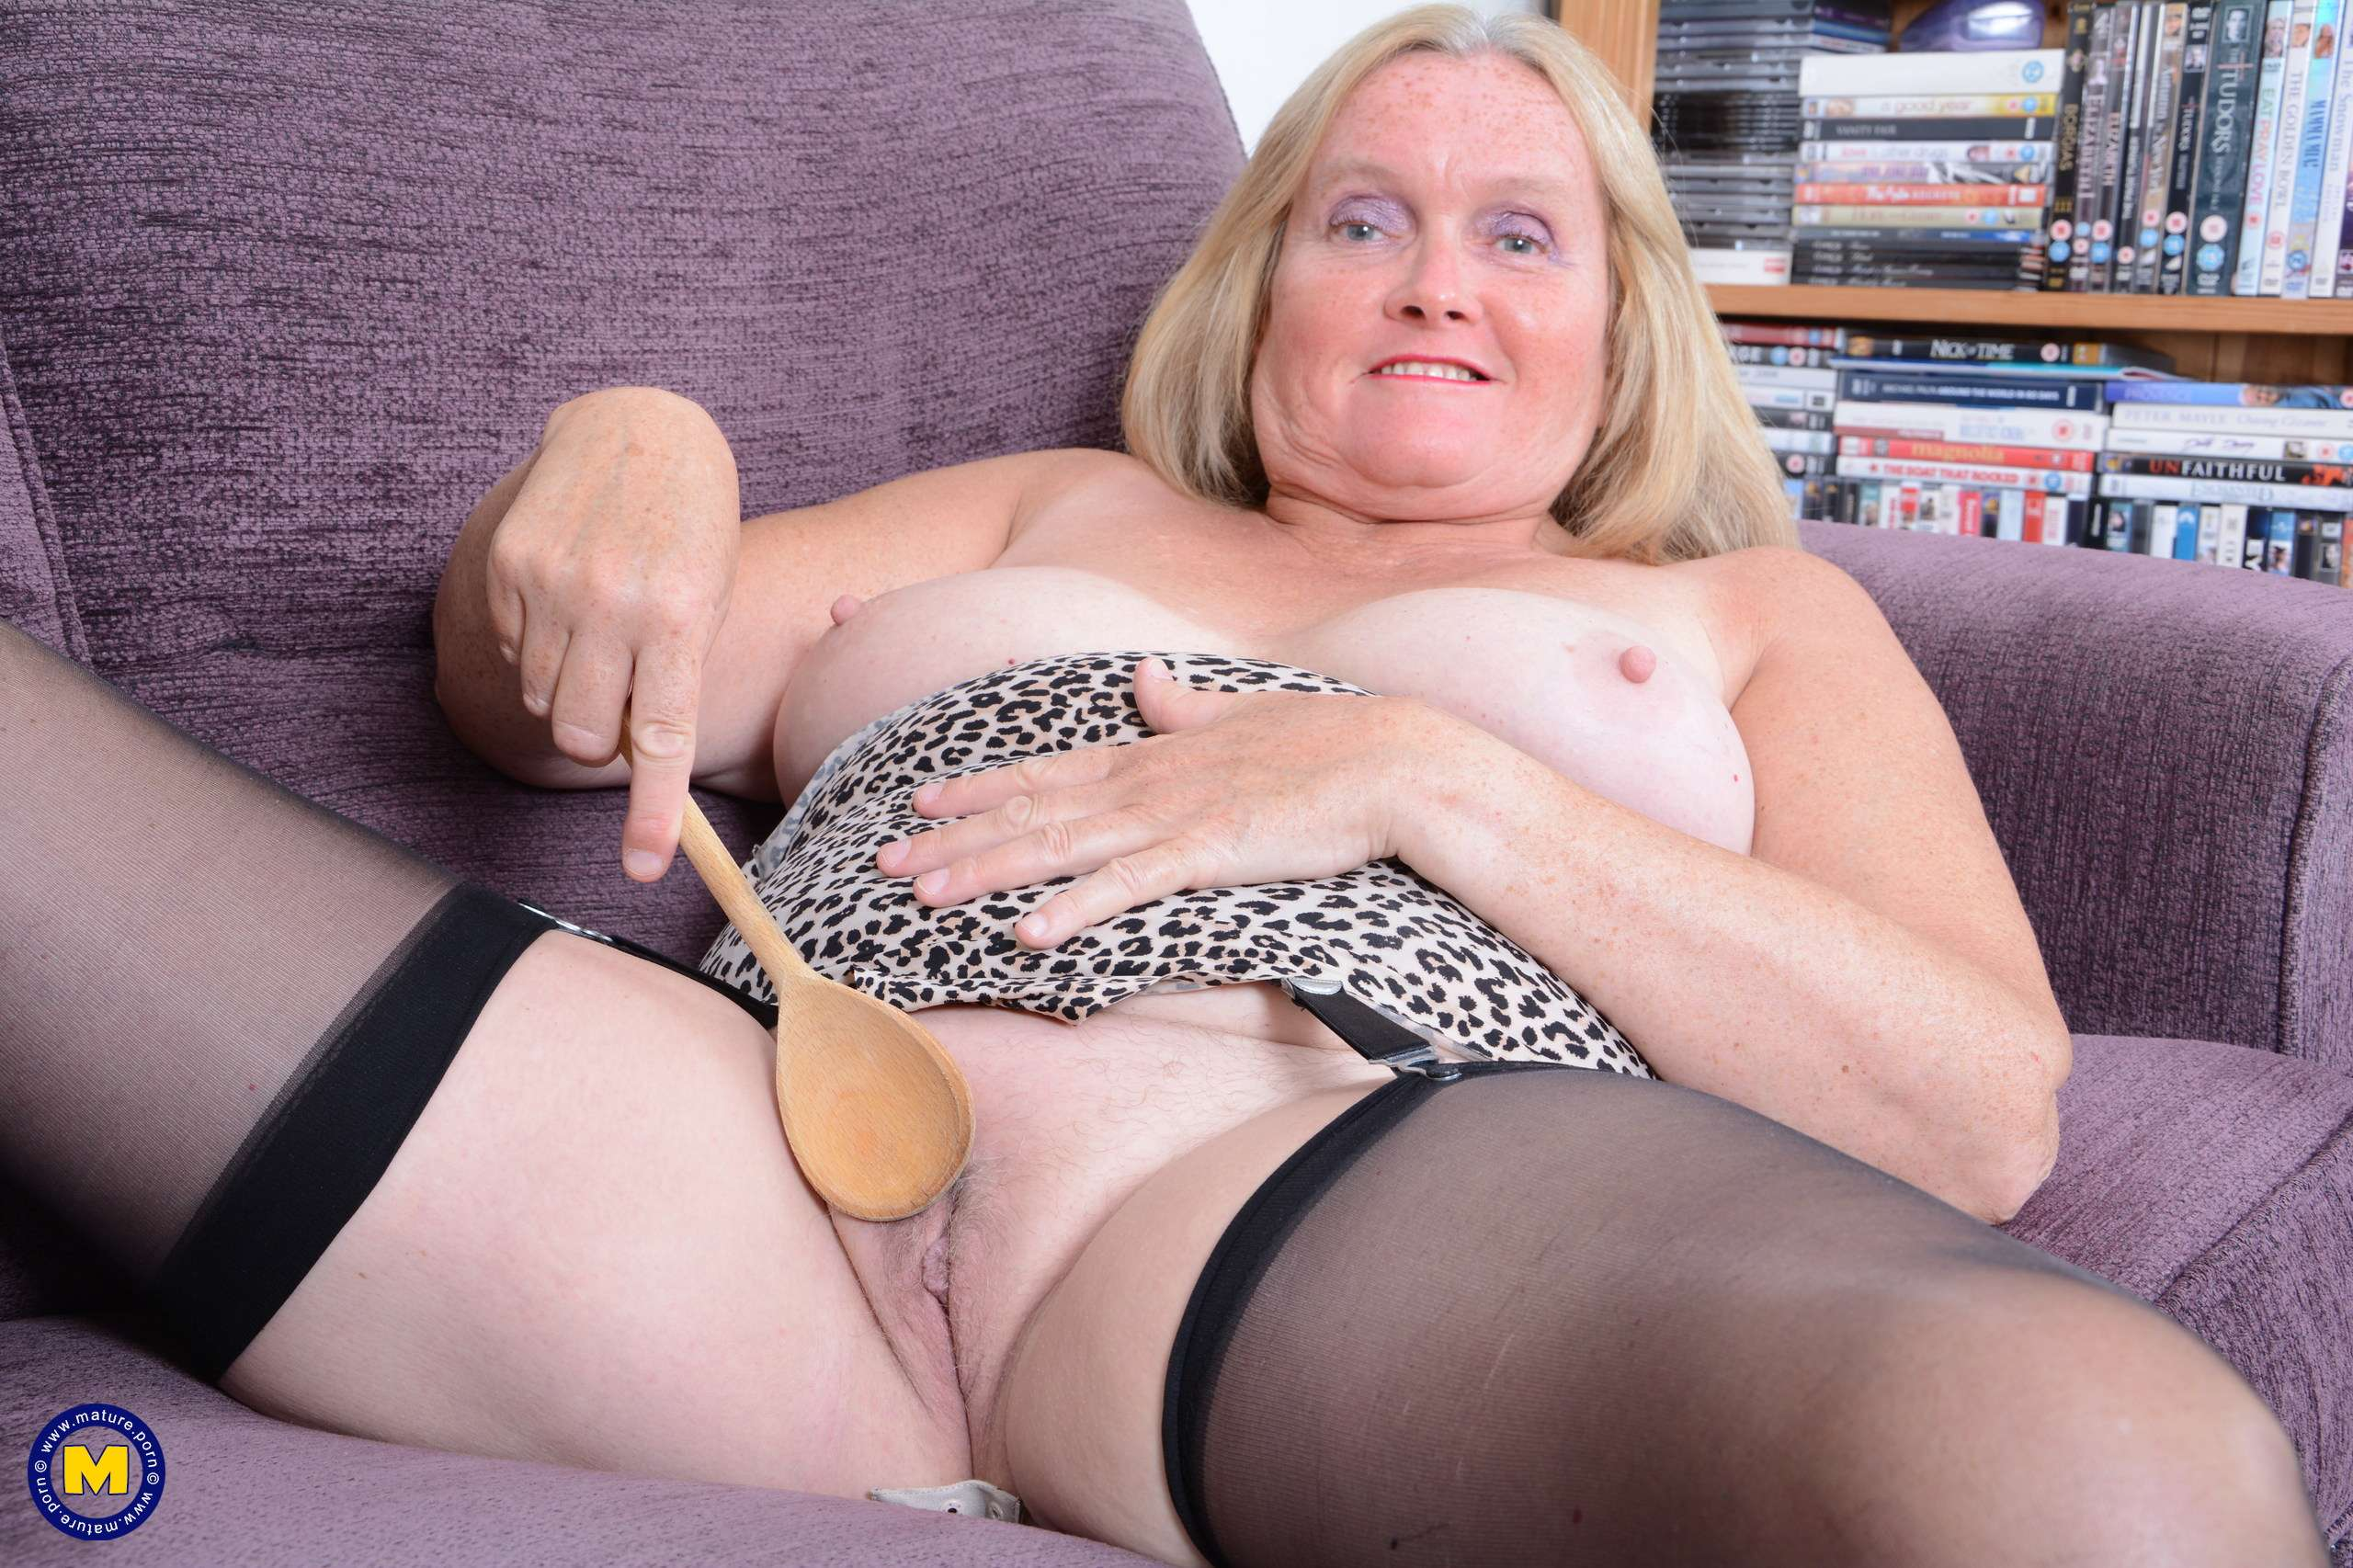 This British mature lady loves to fool around